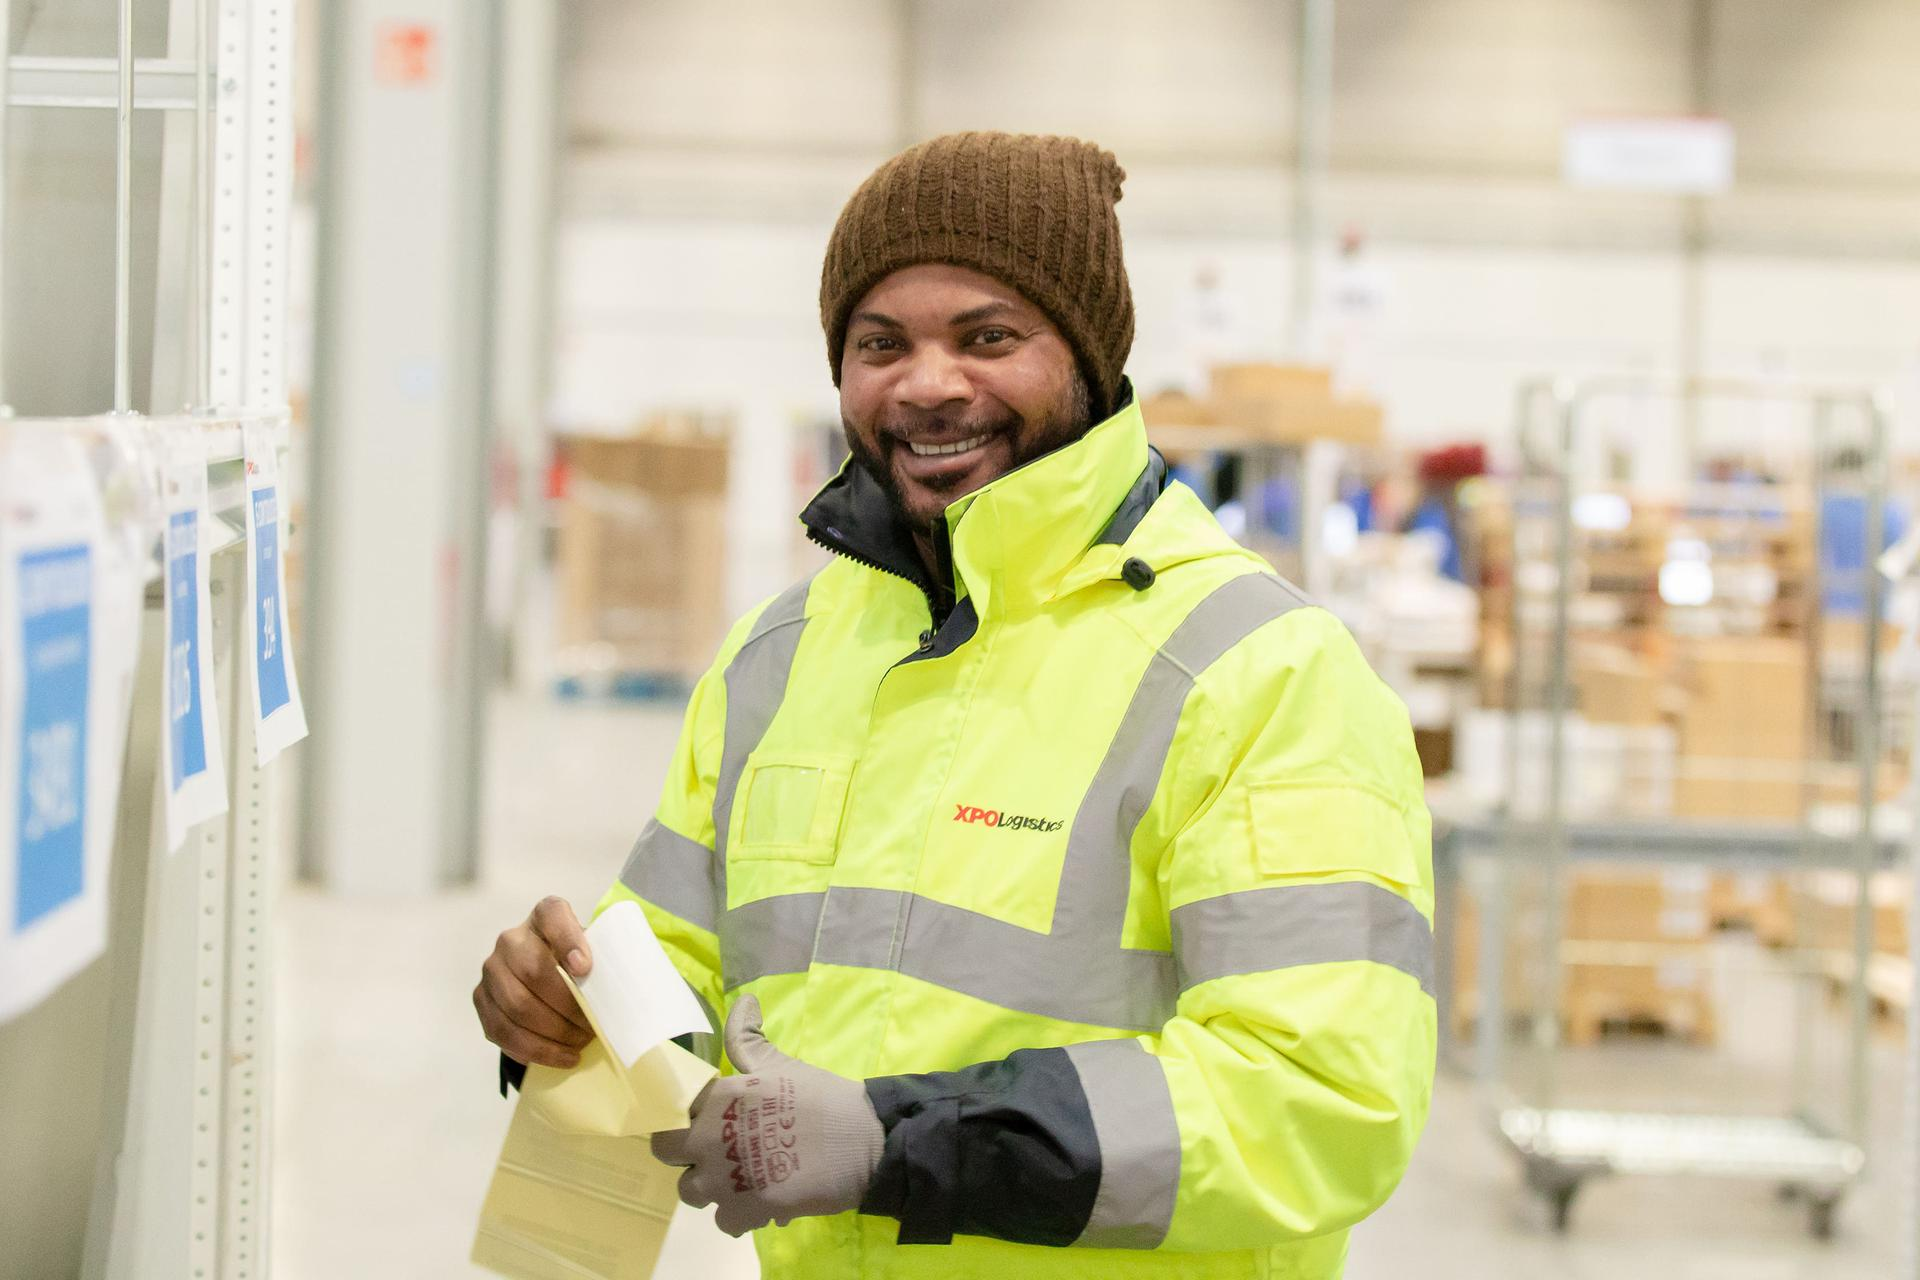 XPO supply chain employee smiling